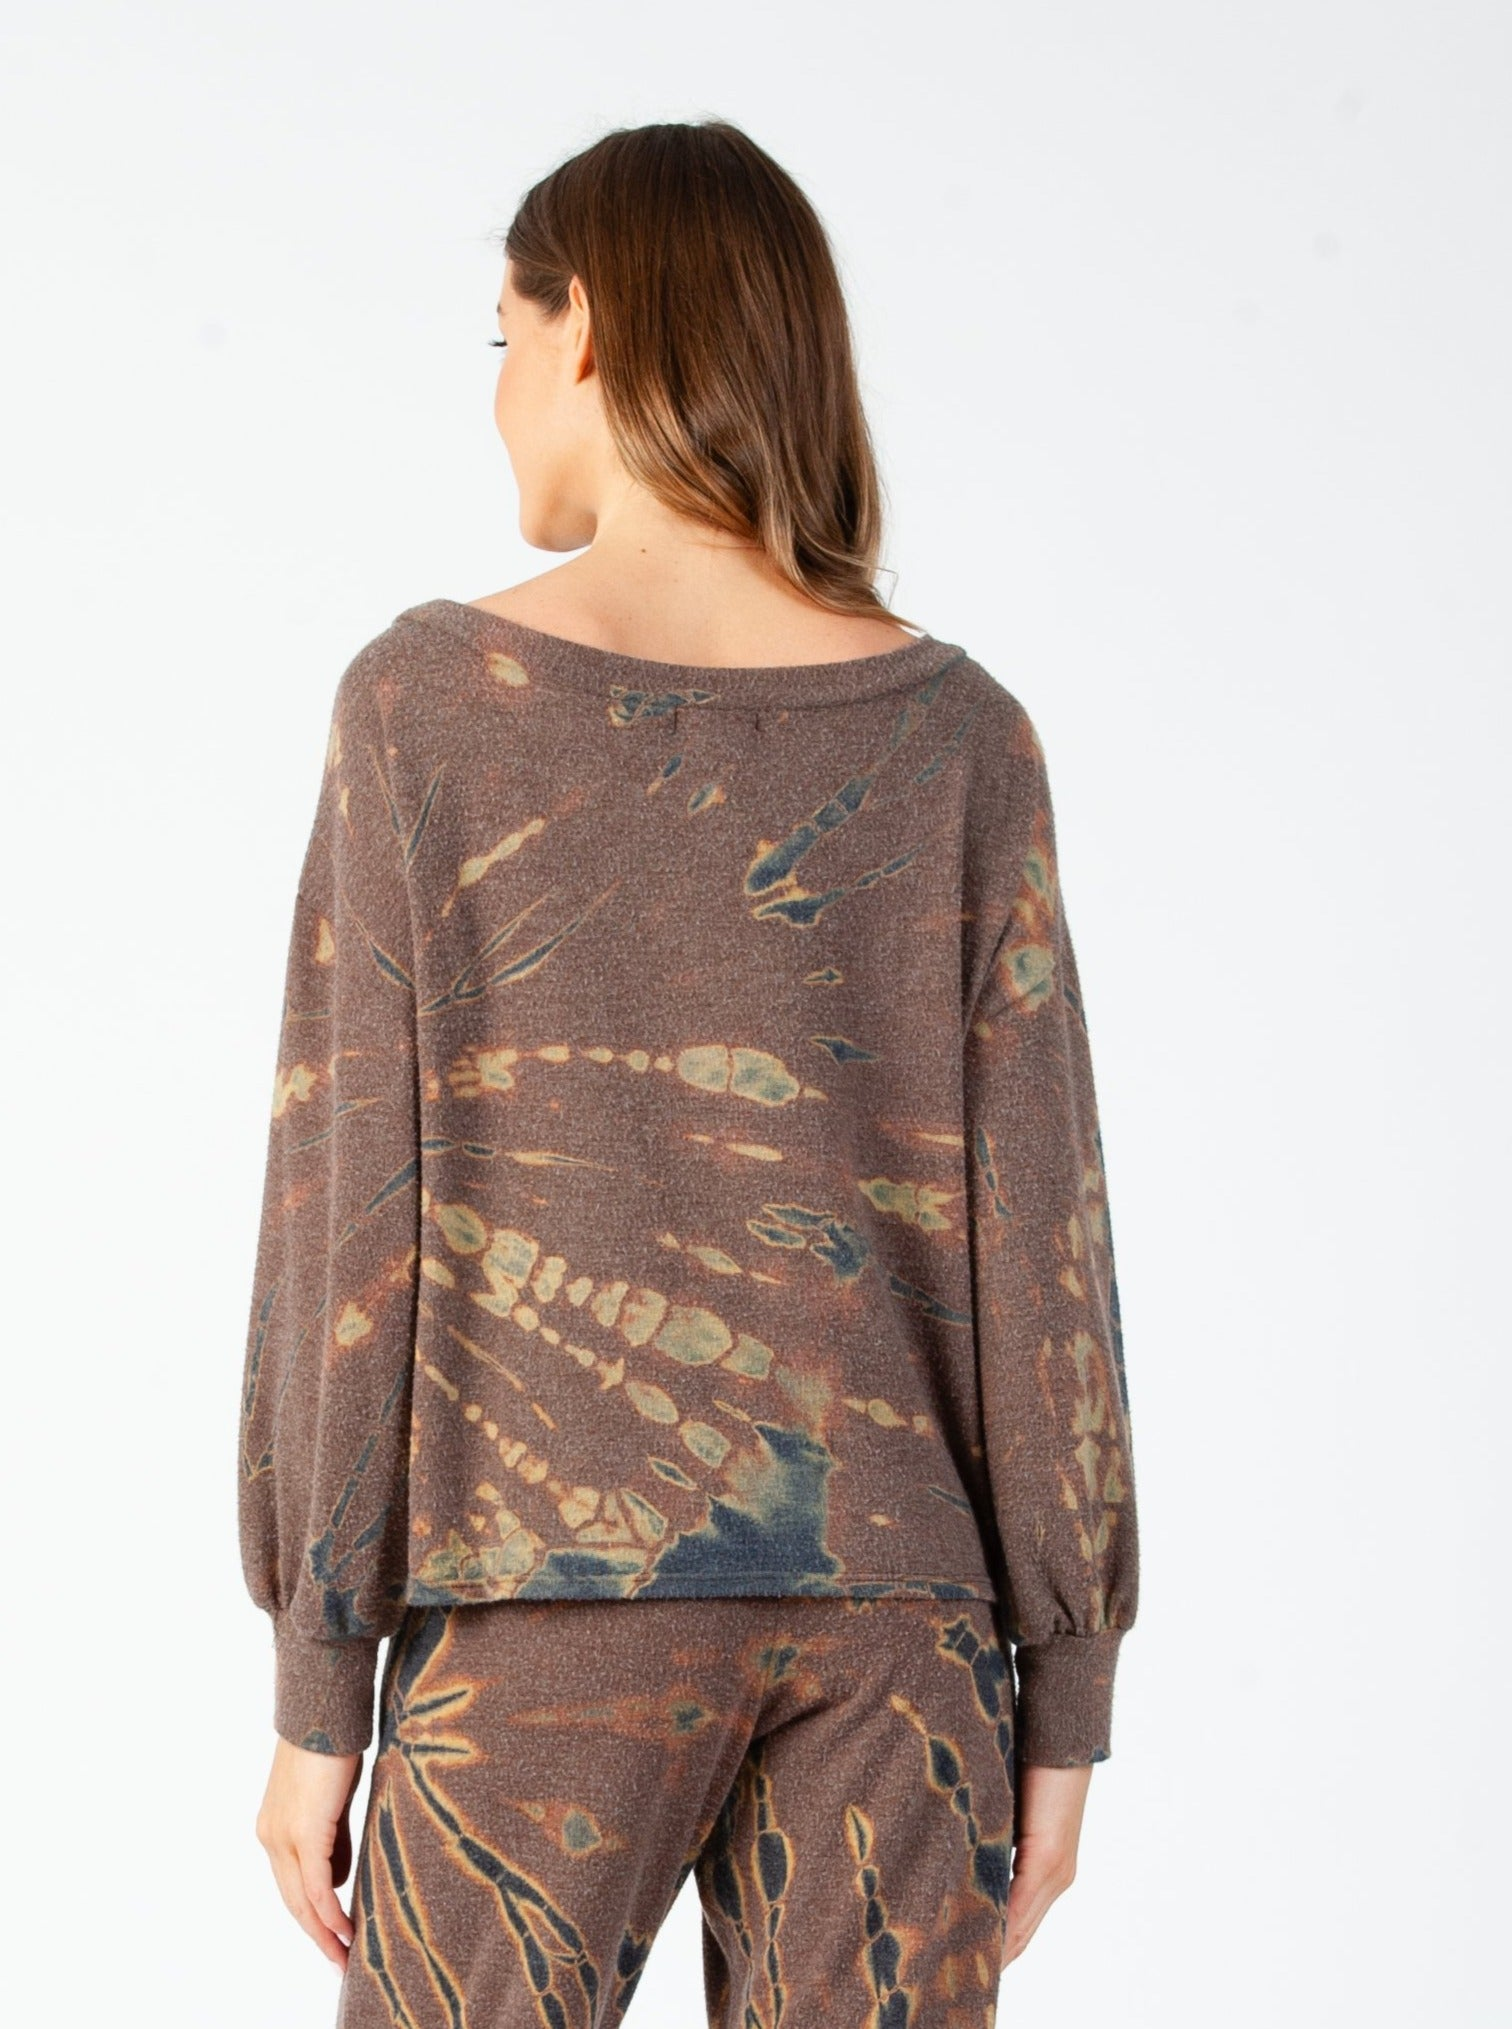 SAVANNAH LONG SLEEVE TOP |  MILITARY TIE DYE